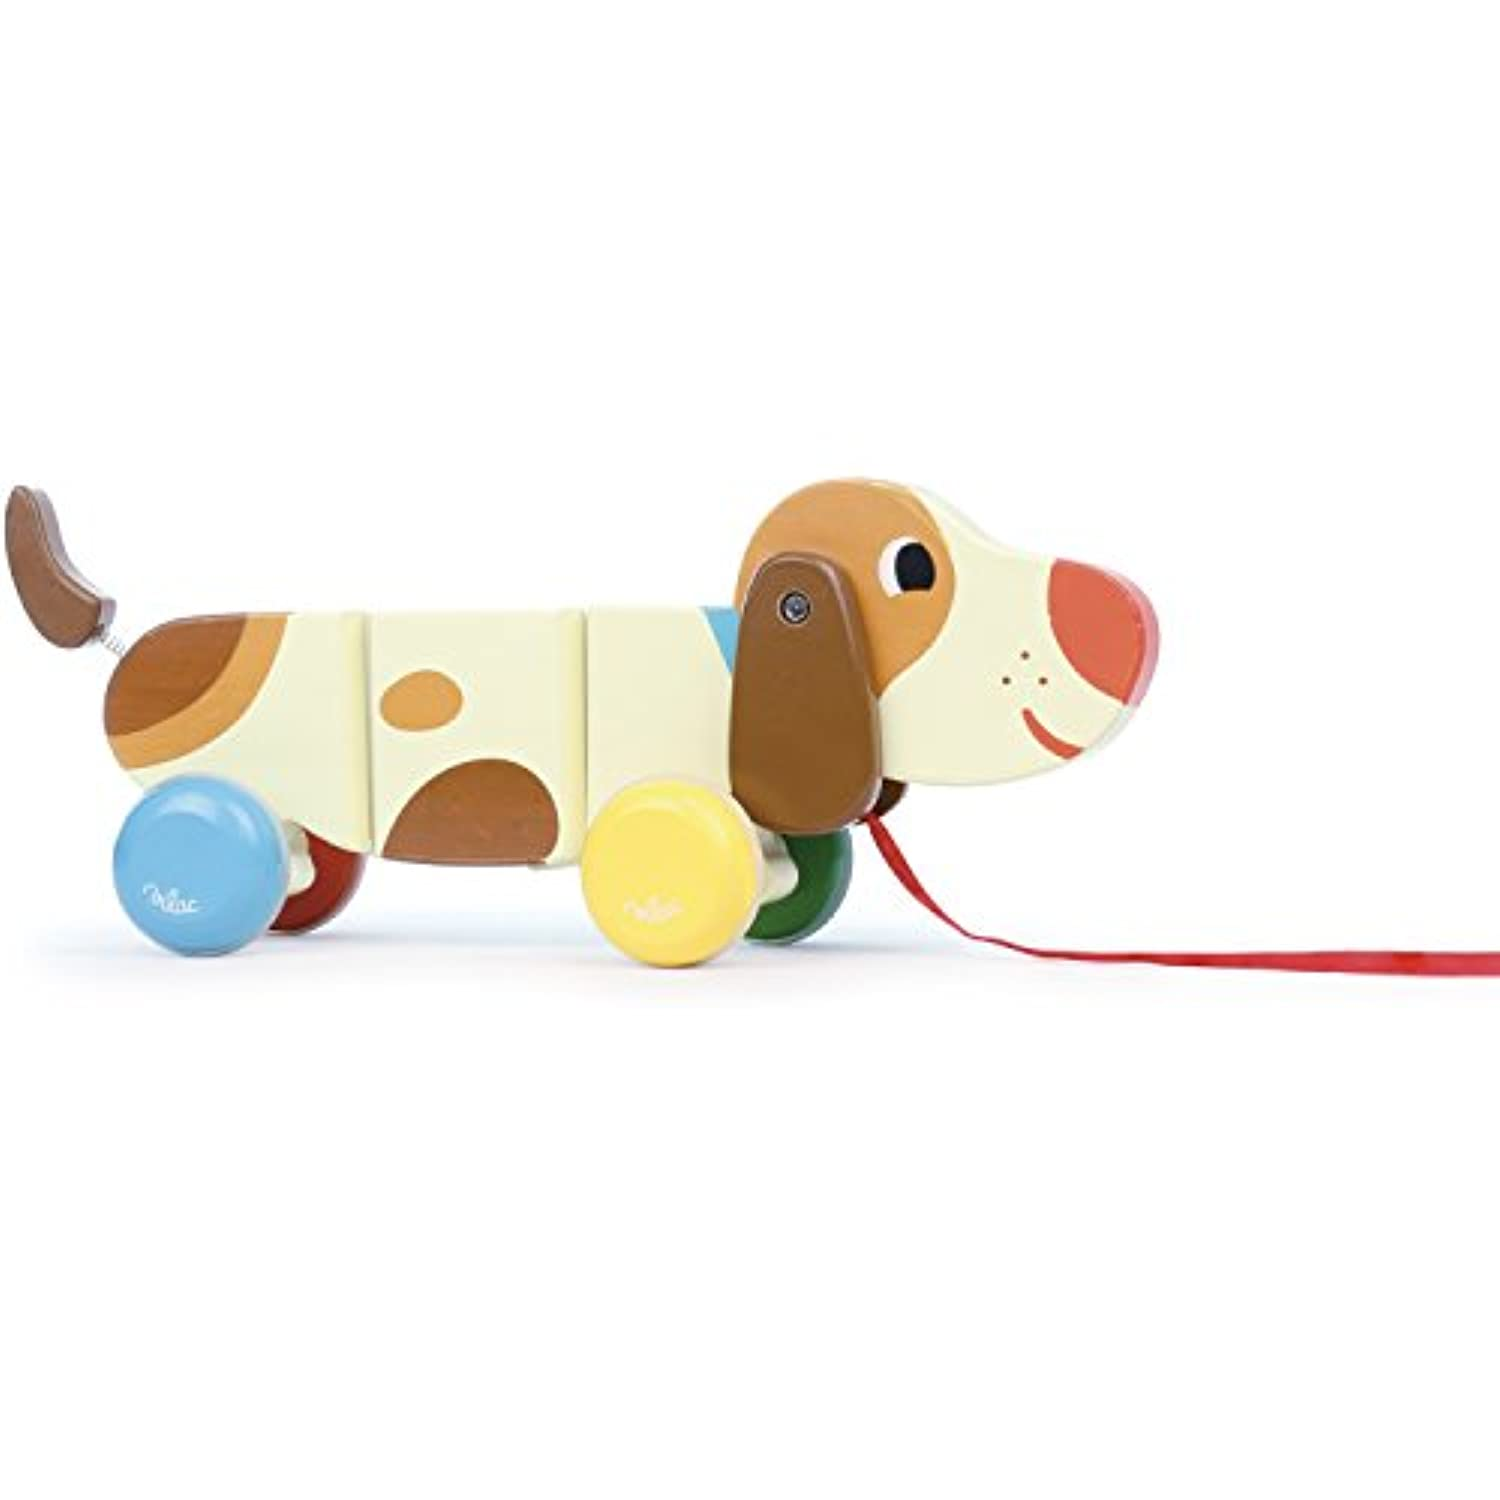 Vilac Basile the Dog Pull Toy